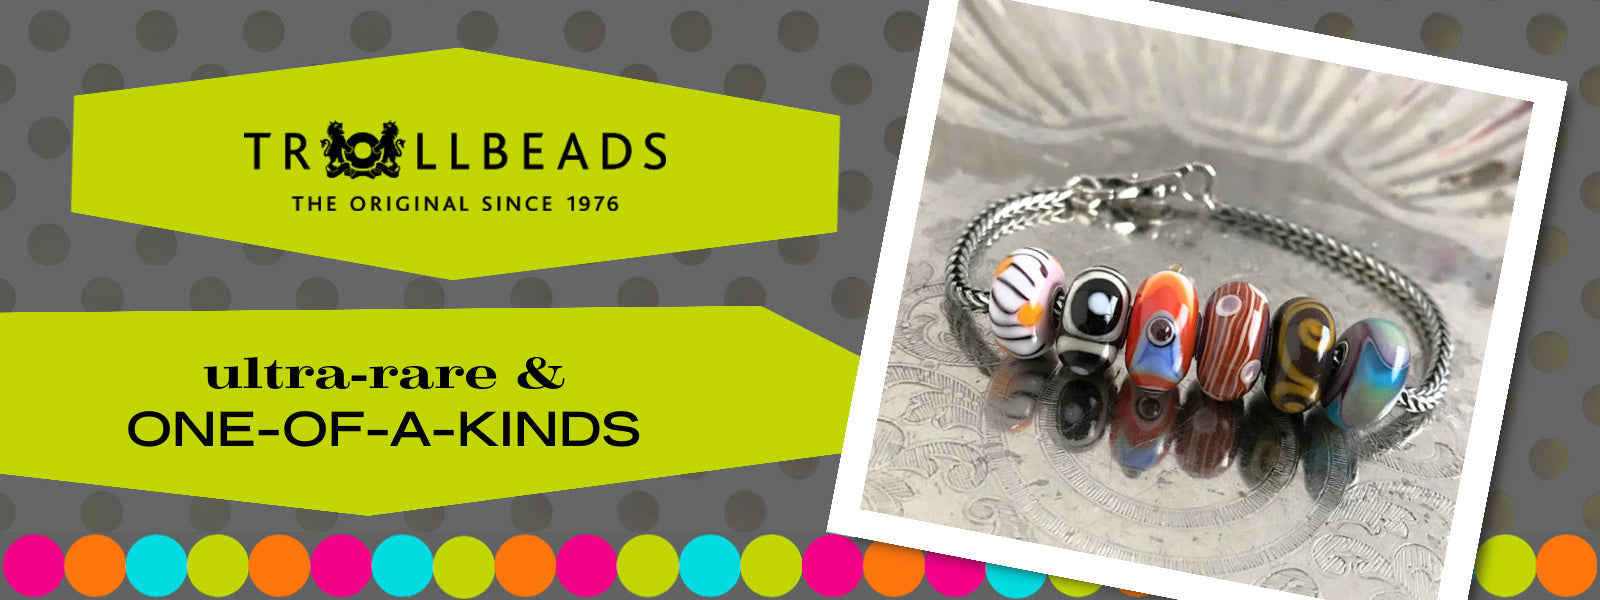 """Suzie Q Studio has stashed away rare and retired special glass, sterling silver and limited edition Trollbeads pieces in the Suzie Q Studio """"Troll Treasures Vault"""". This Trollbeads Ultra-Rare & One-of-a-Kinds Collection features some rare beauties."""